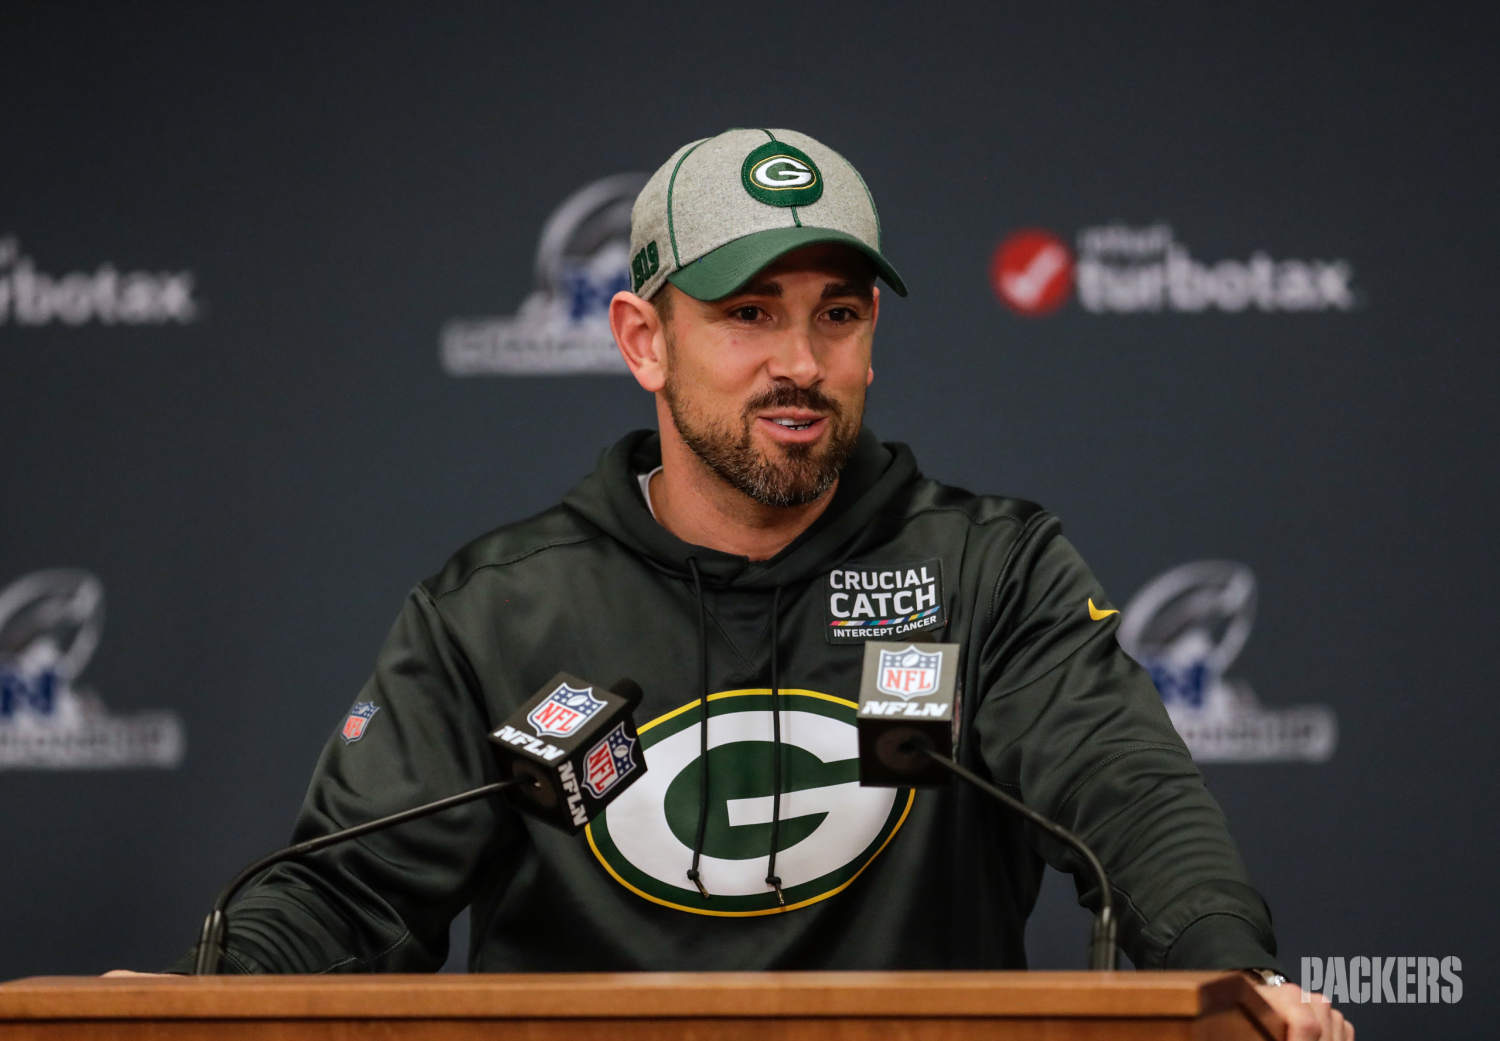 Matt LaFleur: The Difference Maker